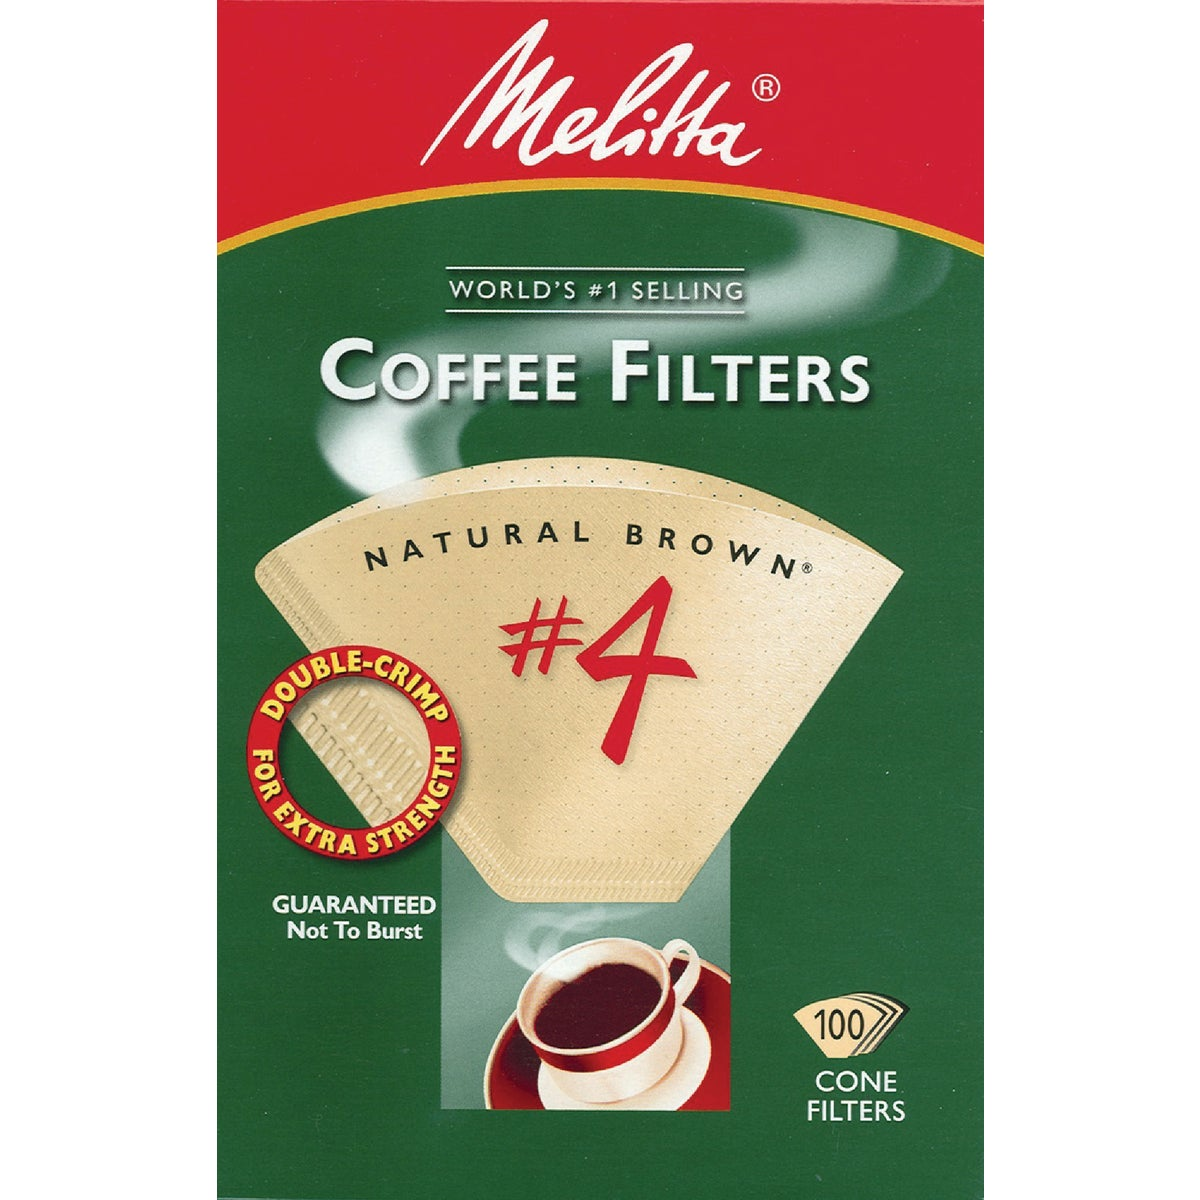 BROWN #4 COFFEE FILTER - 624602 by Melitta U S A Inc